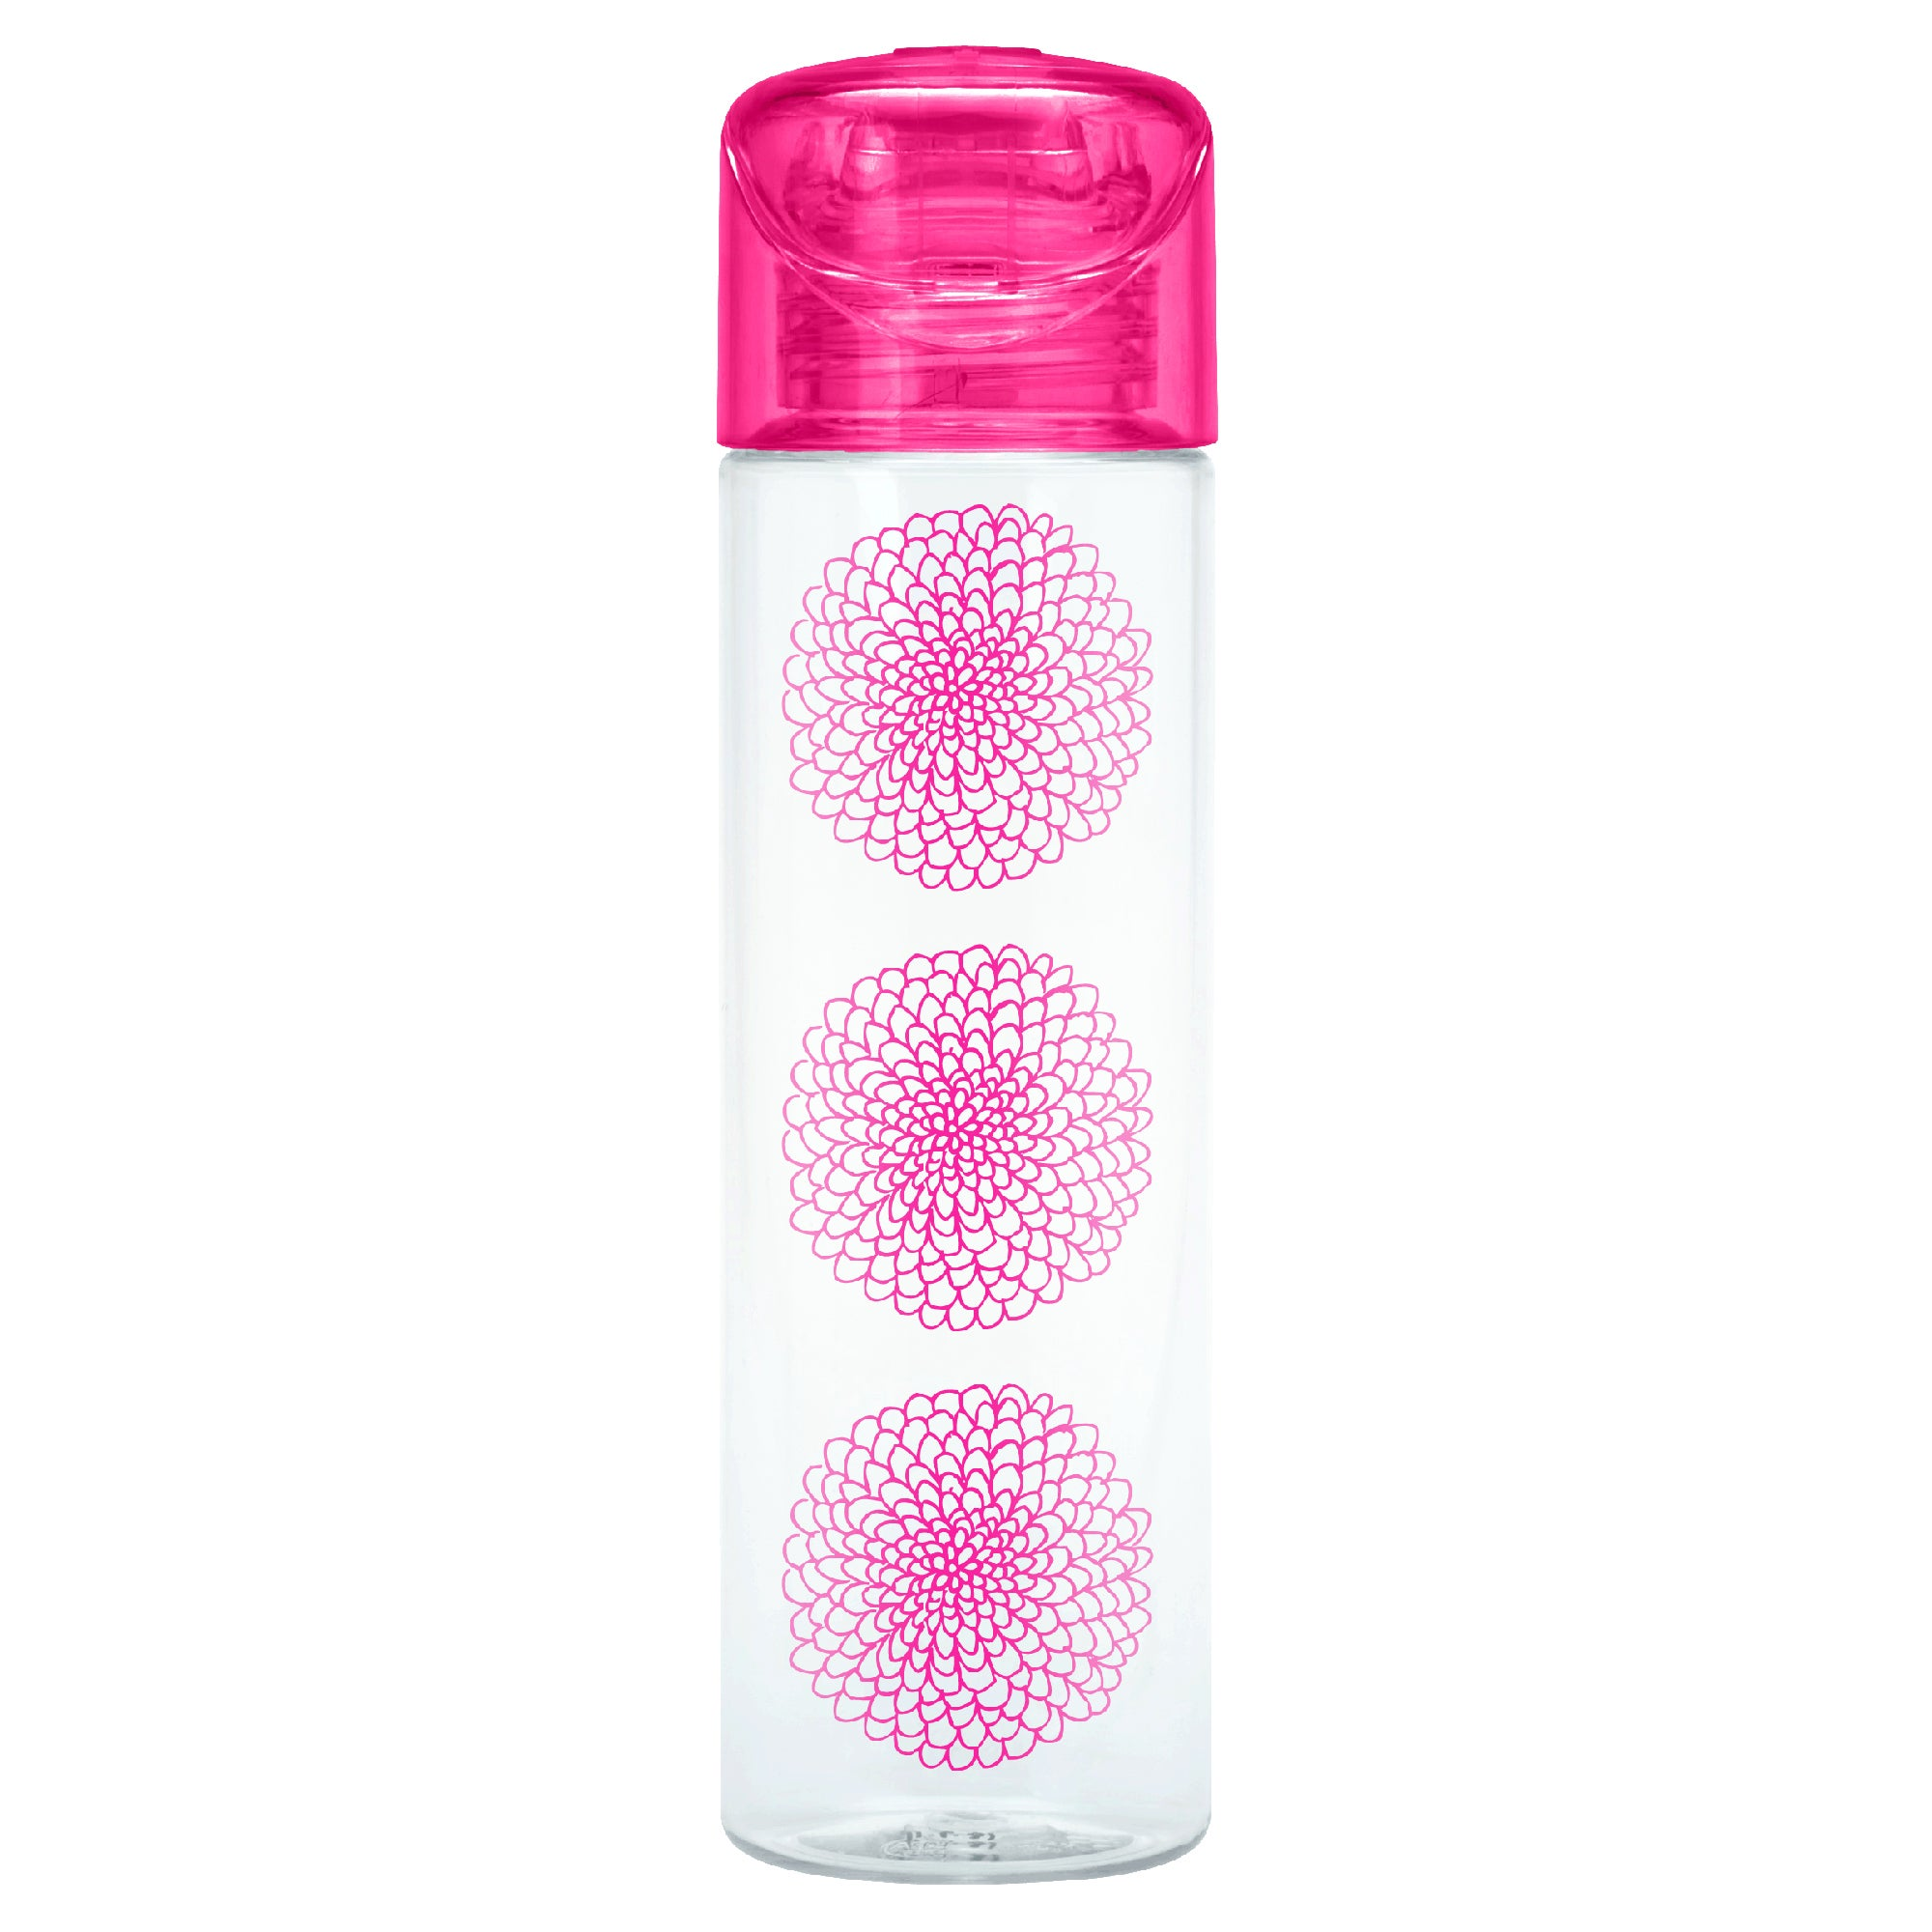 Image of Smash Slim Pink Flower Drinks Bottle Pink